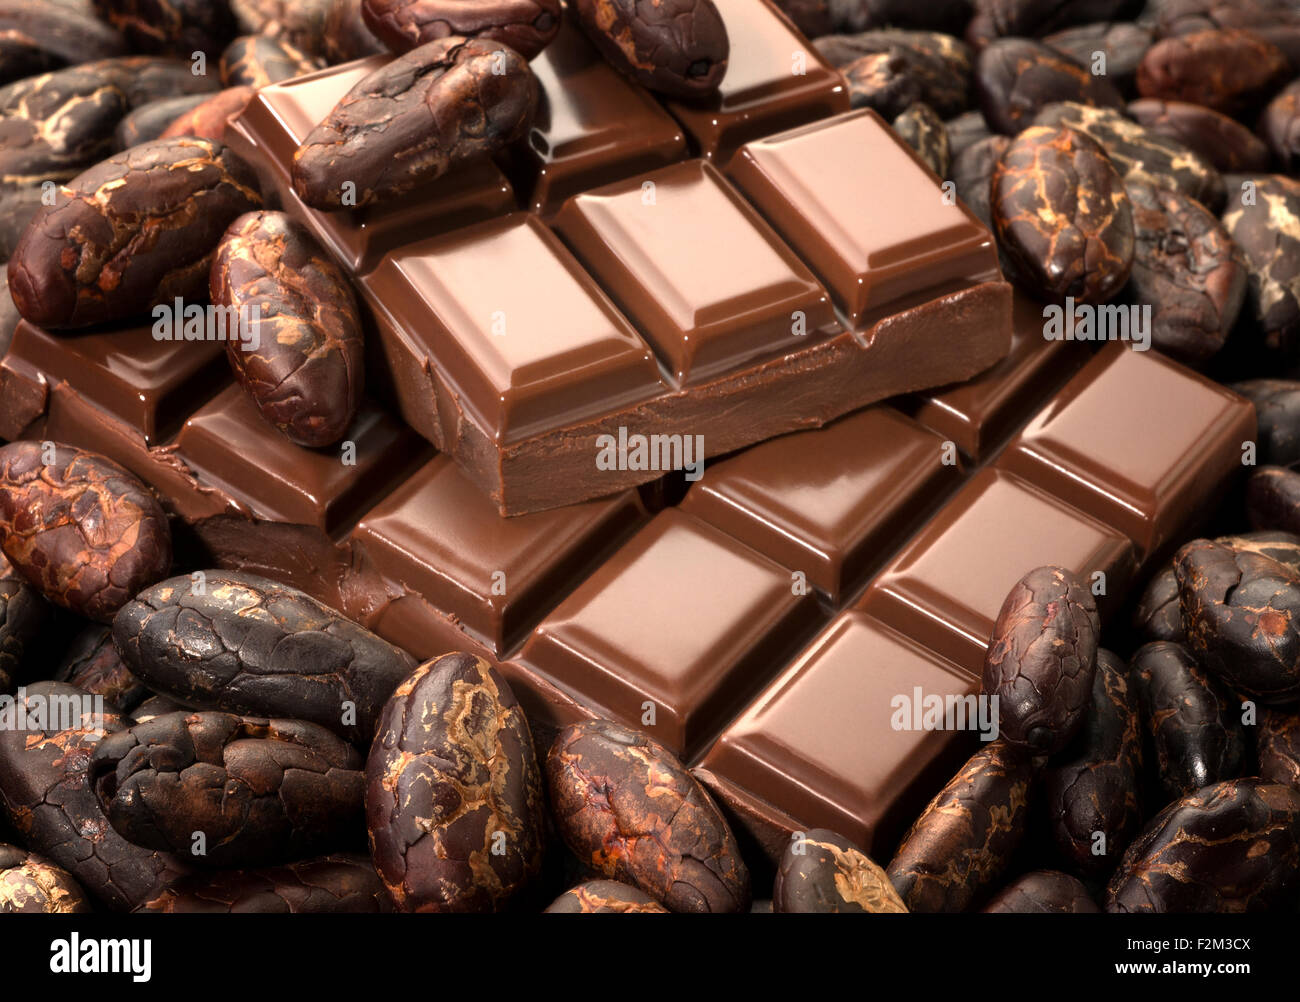 Cocoa beans and chocolate bars - Stock Image